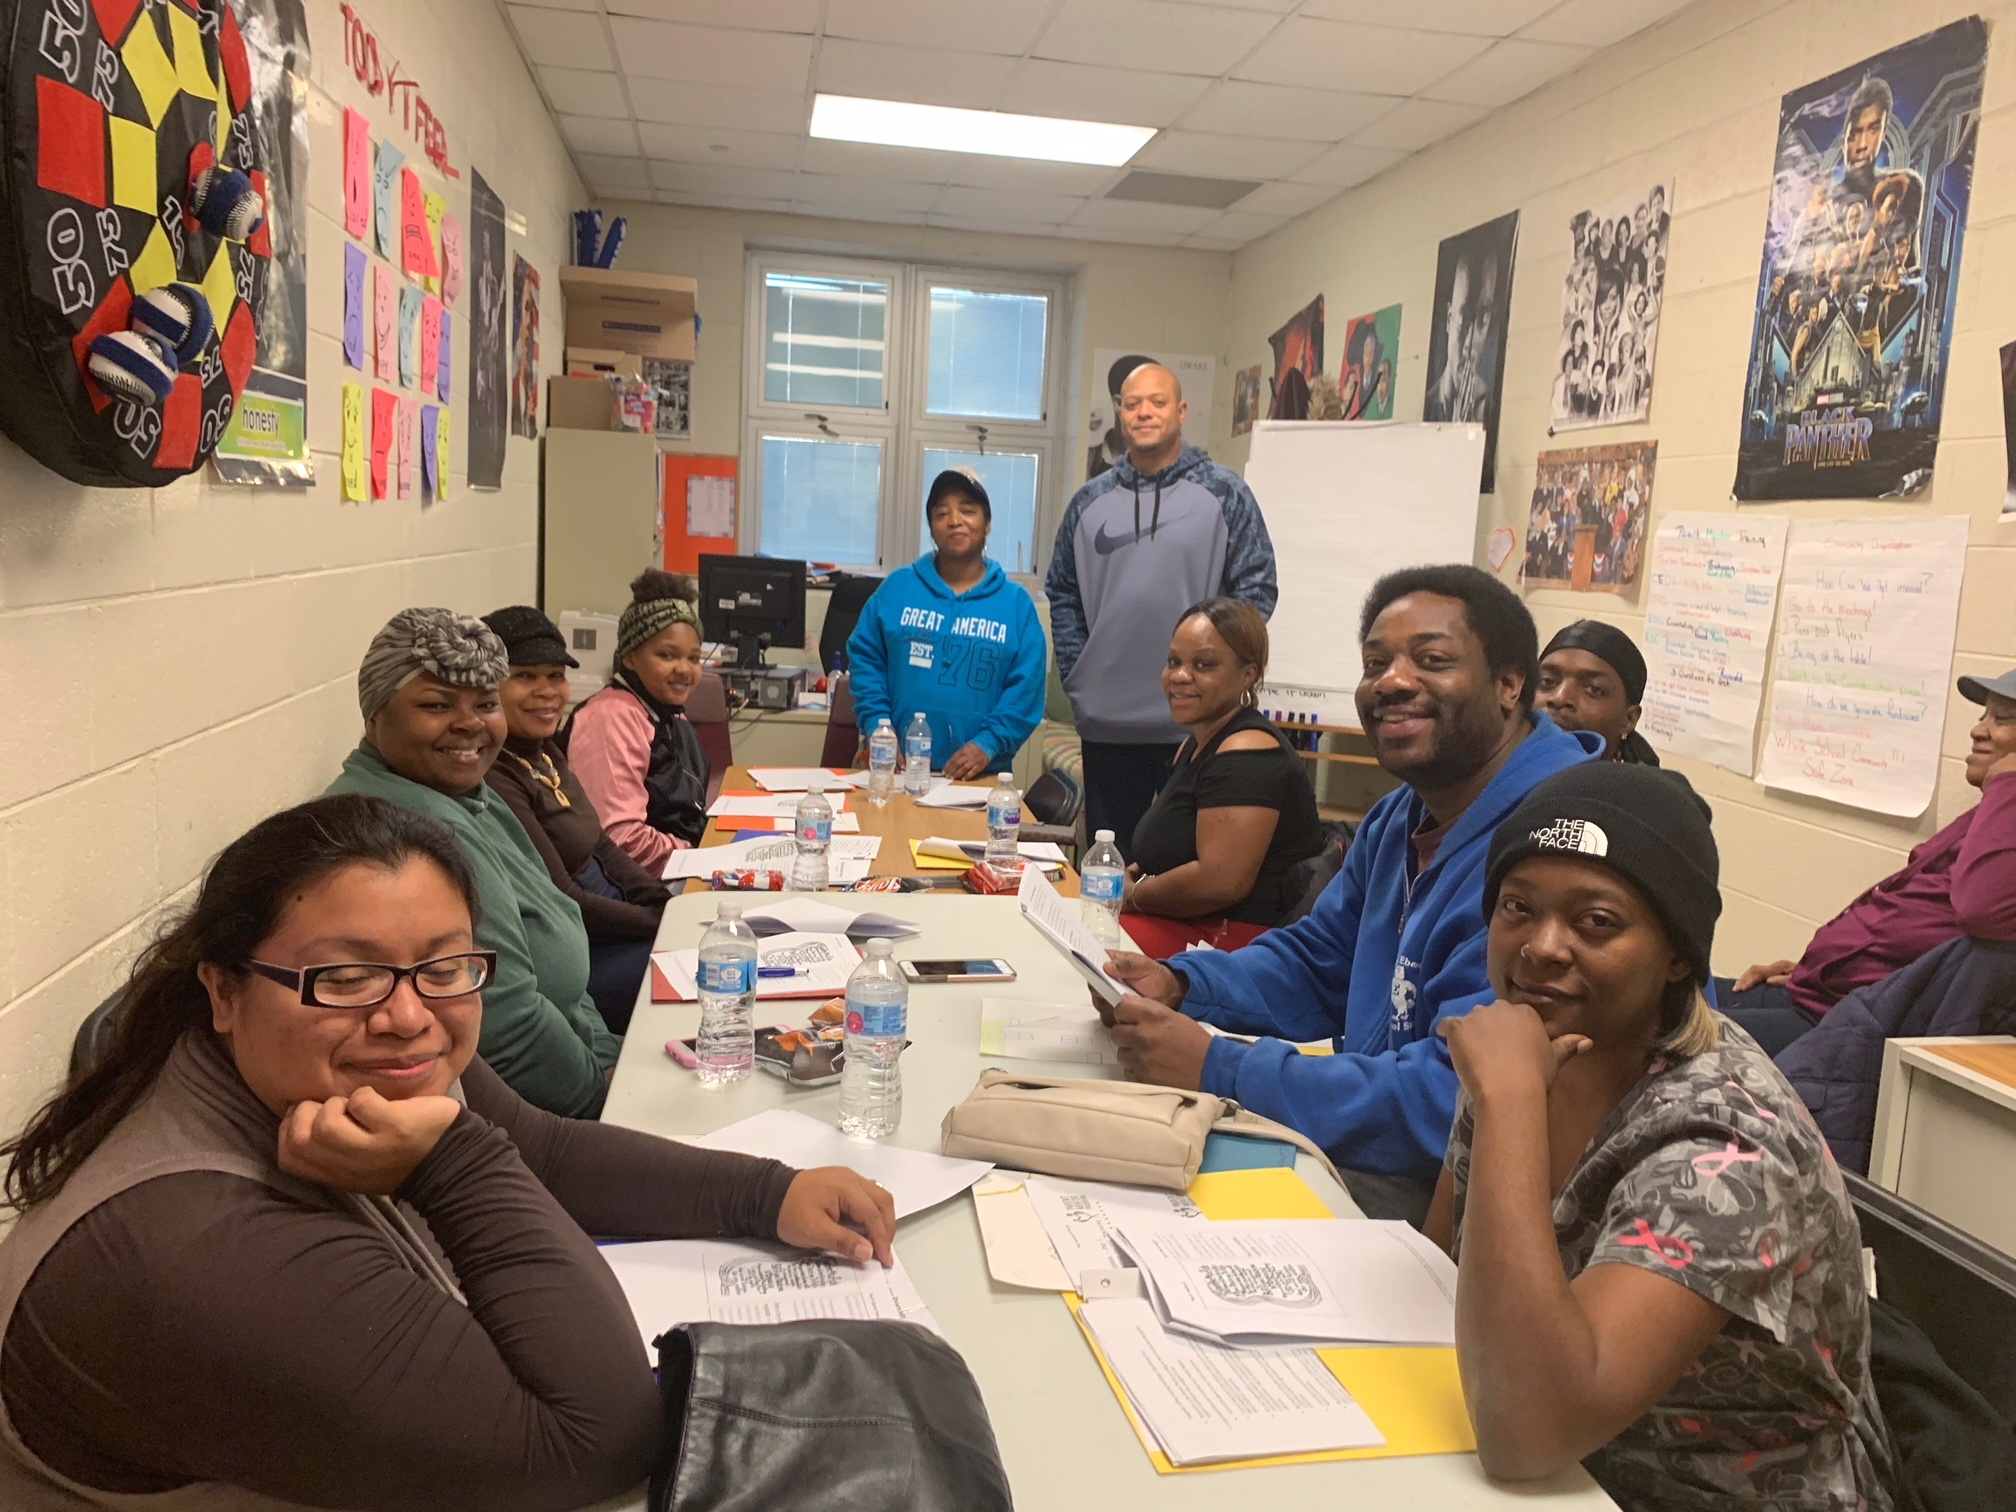 Parent mentors join together to learn new skills that will be used inside and outside the classroom.